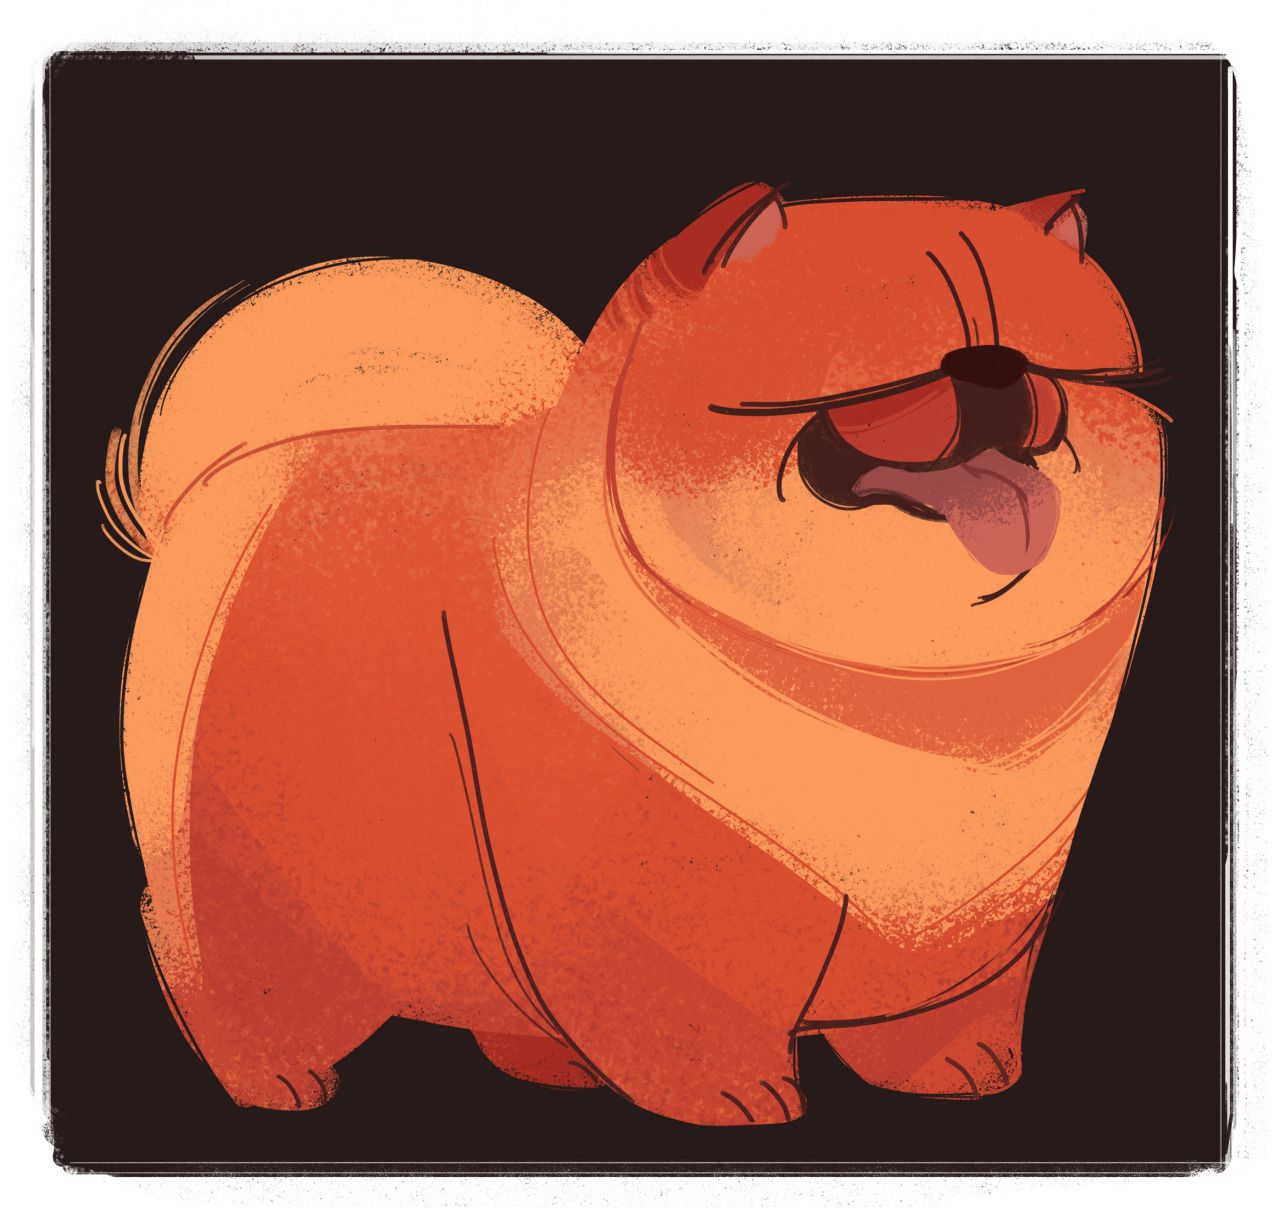 240 chow chow dog week day 7 that u0027s all for the dog drawings